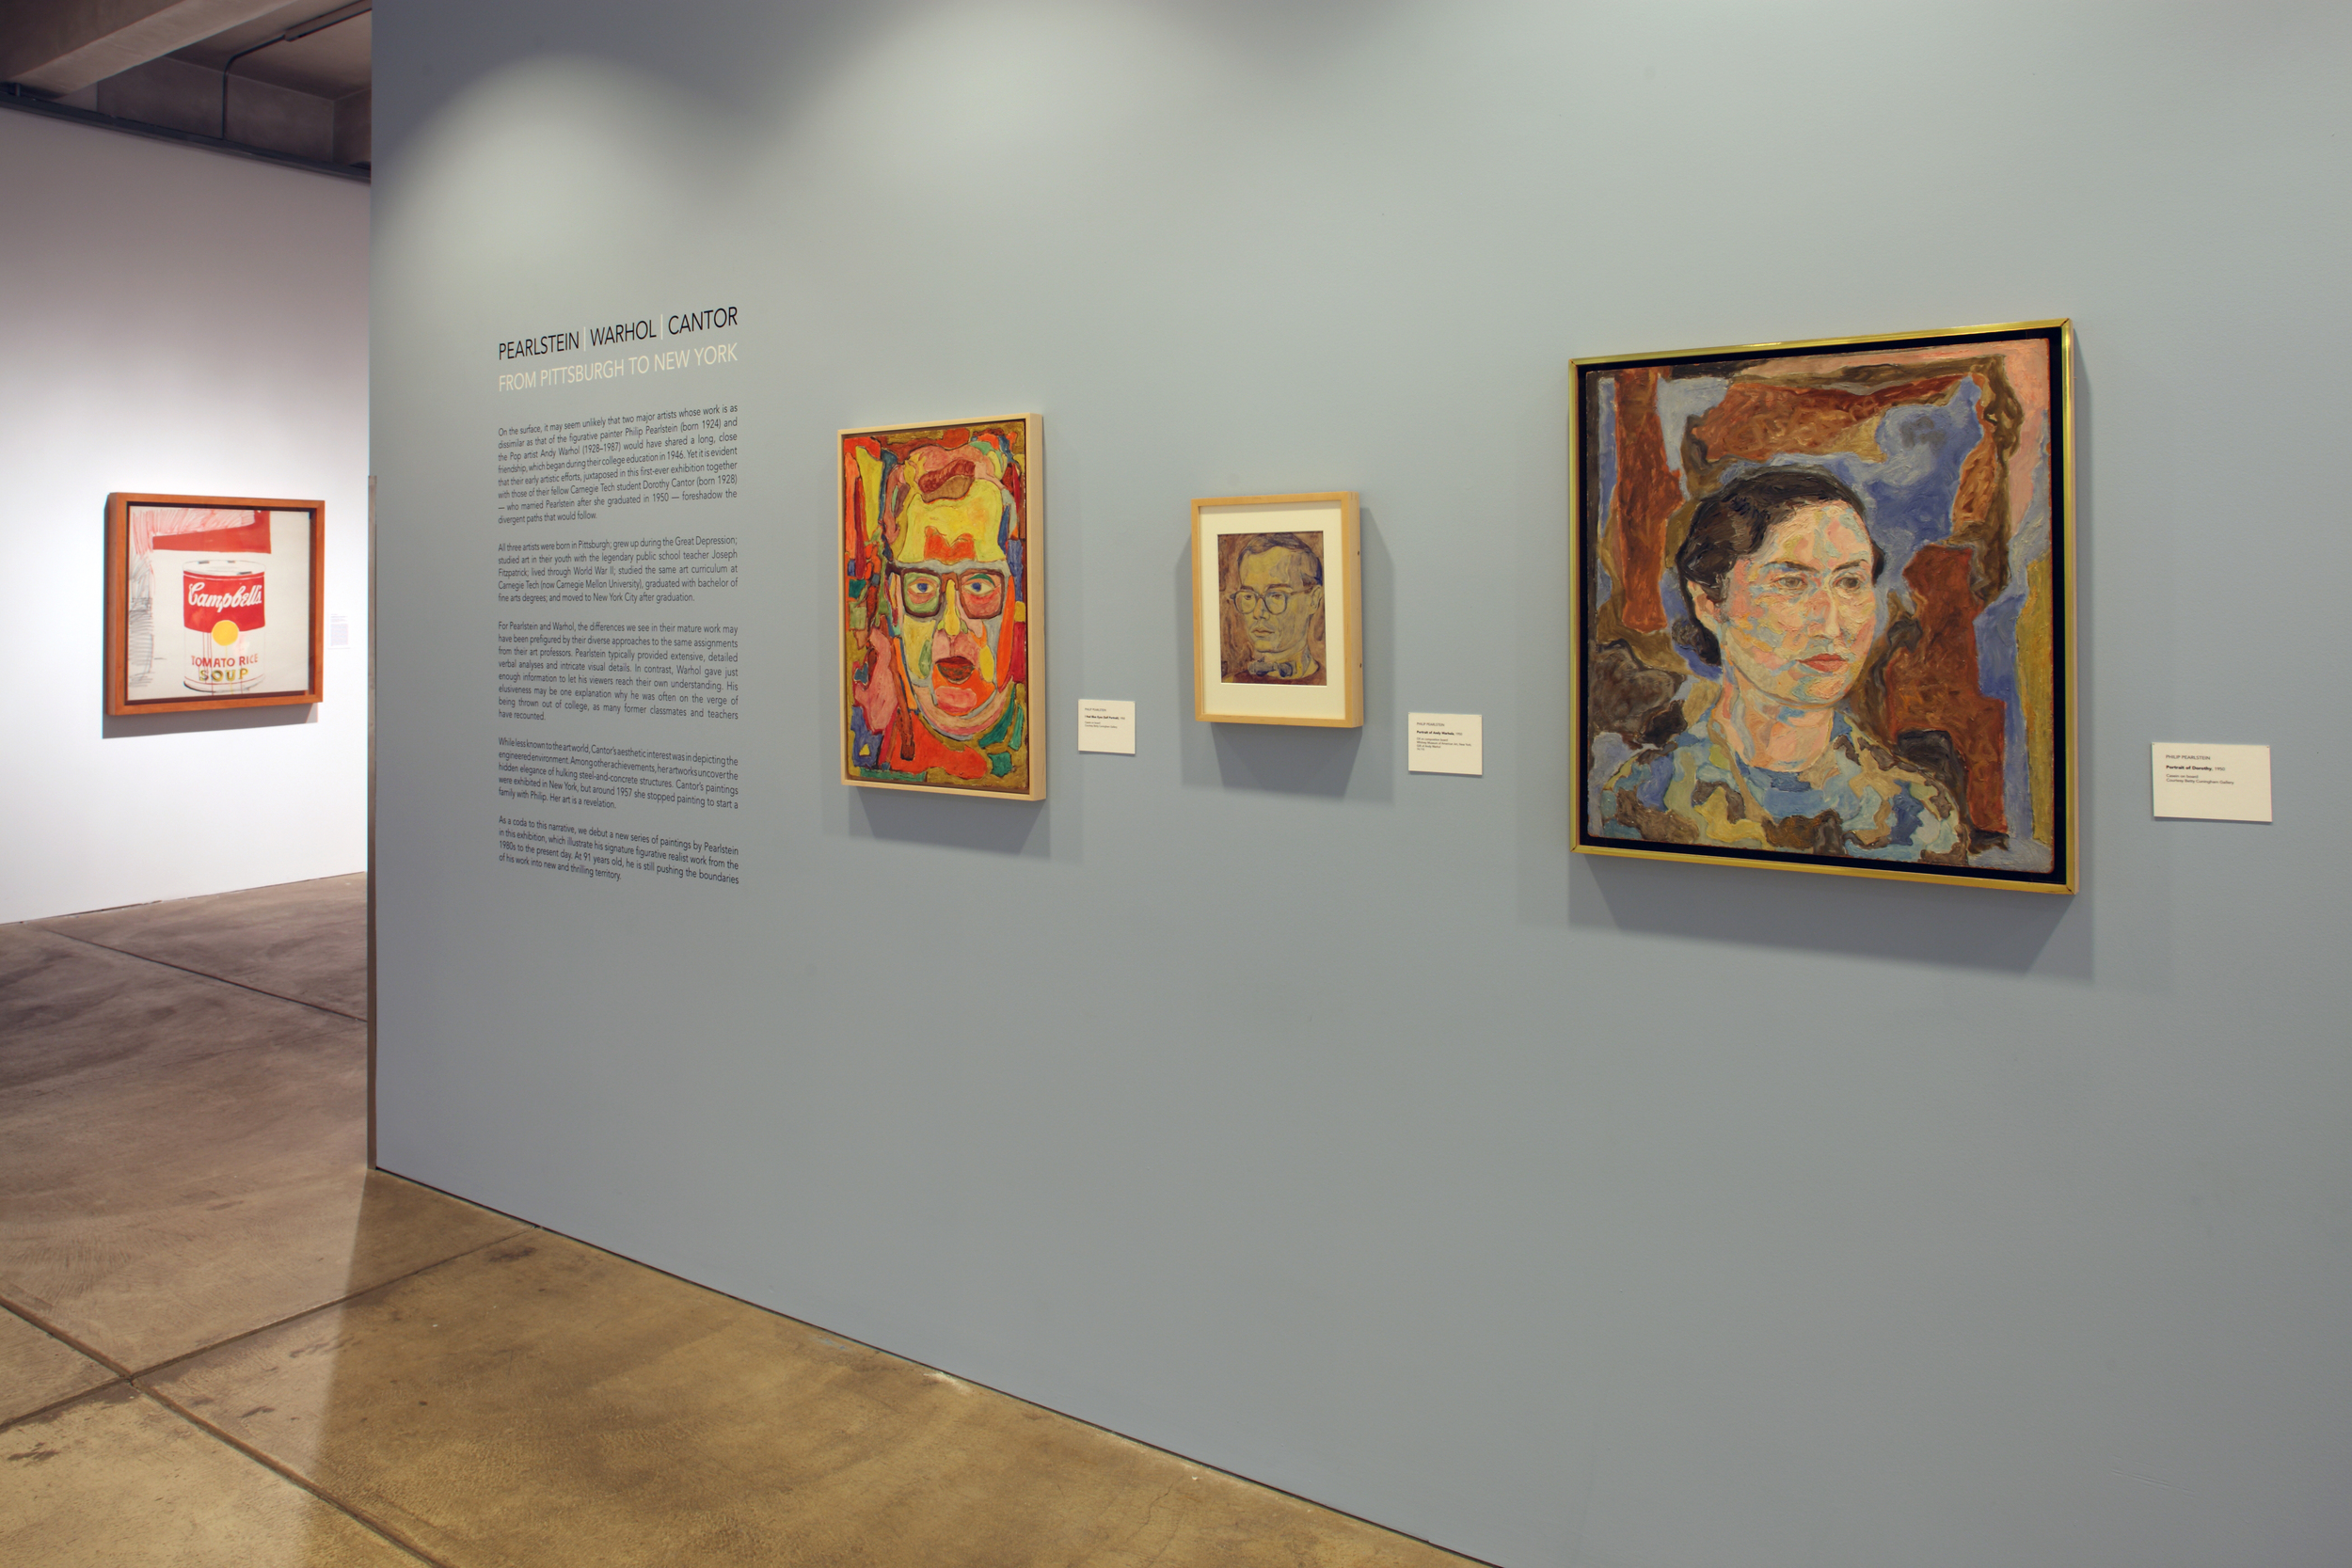 Pearlstein Warhol Cantor - From Pittsburgh to New York at AWM, 2015 0002.JPG